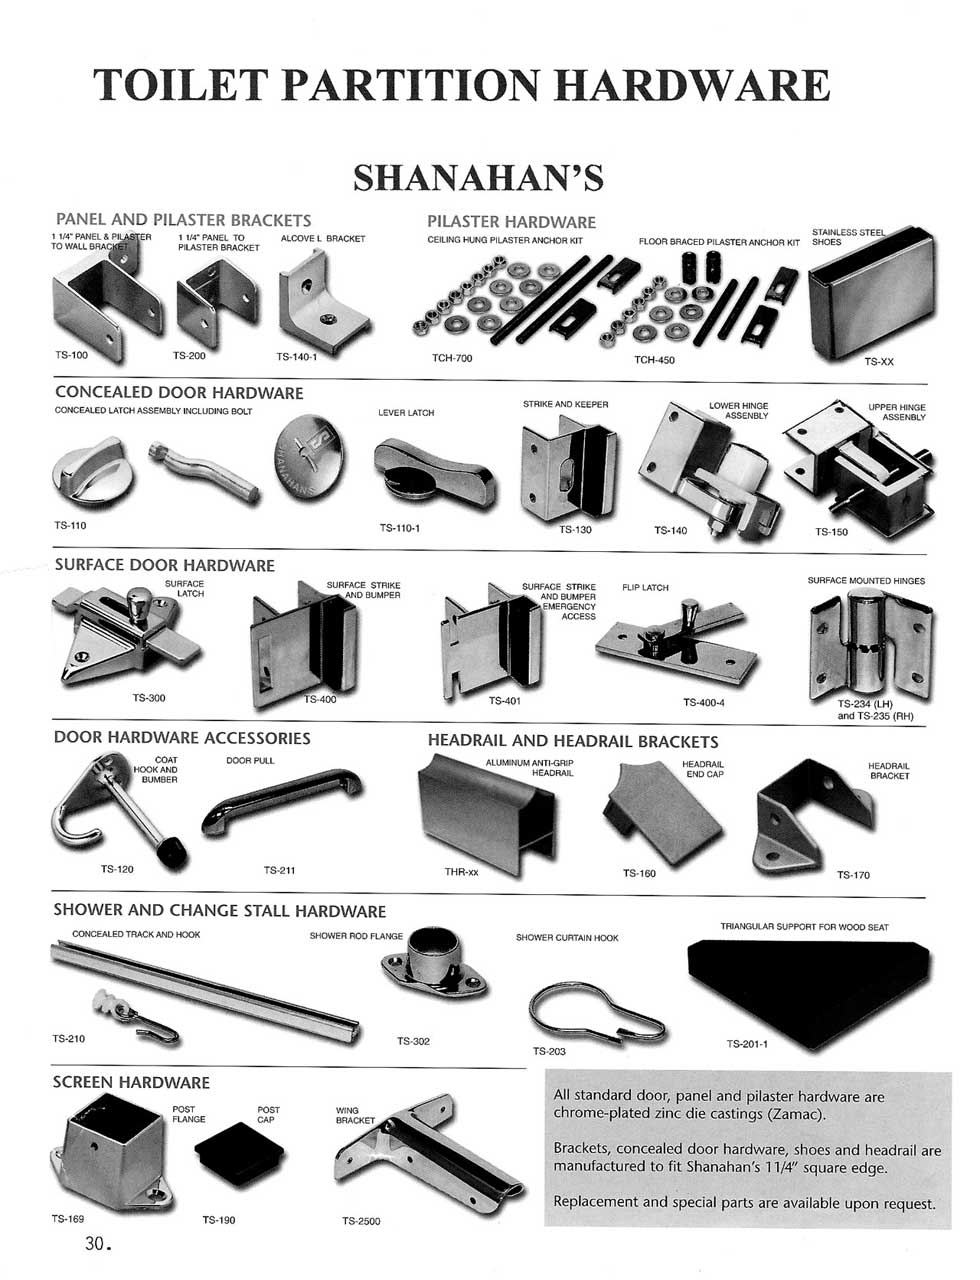 Shanahans Toilet Partition Hardware From Wielhouwer Replacement - Bathroom partition brackets